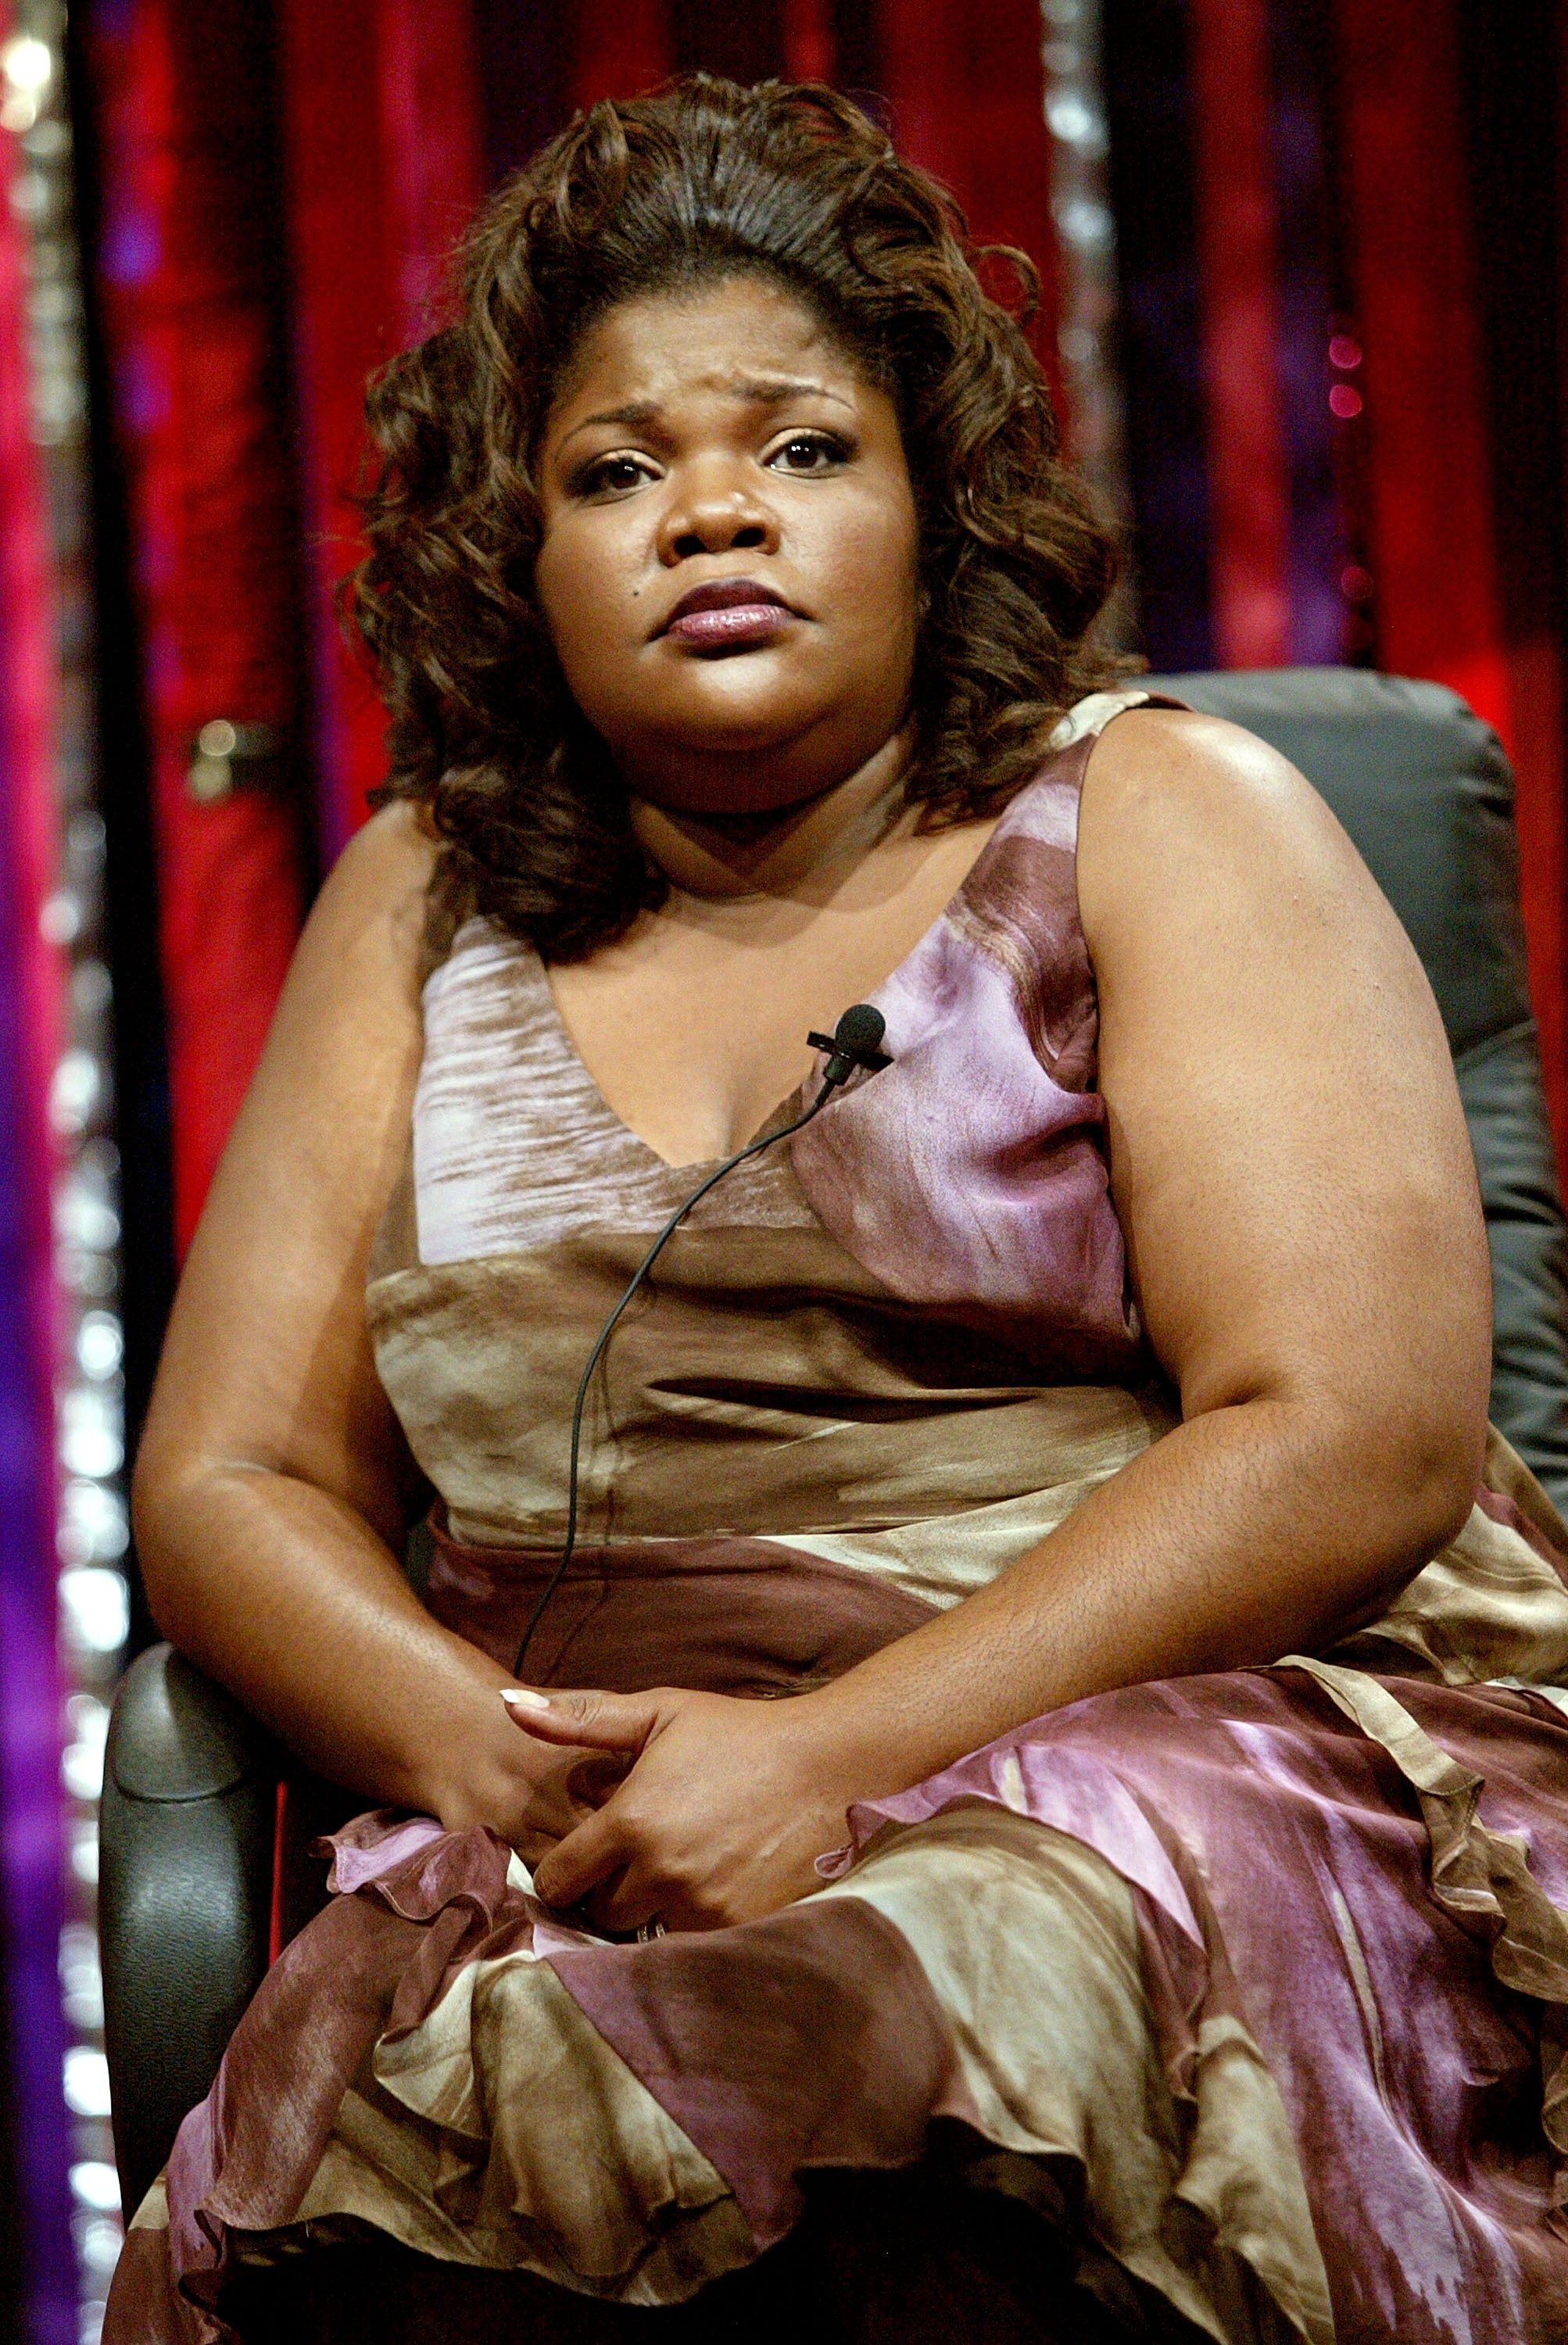 Mo'Nique at a 2005 press tour in California. | Photo: Getty Images